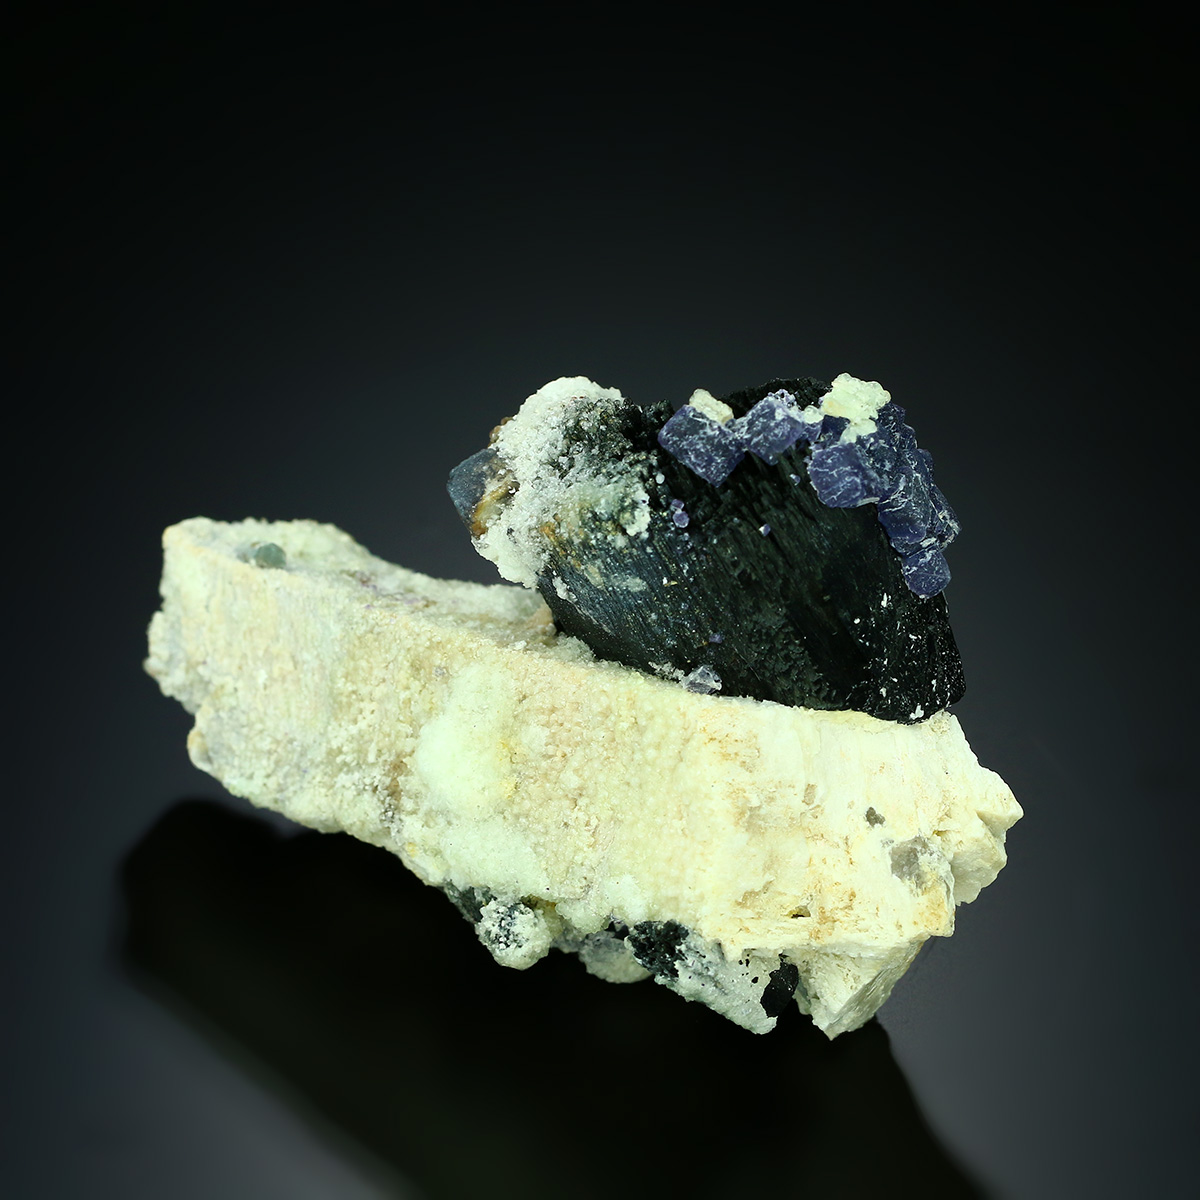 Fluorite On Tourmaline Var Schorl On Feldspar Group